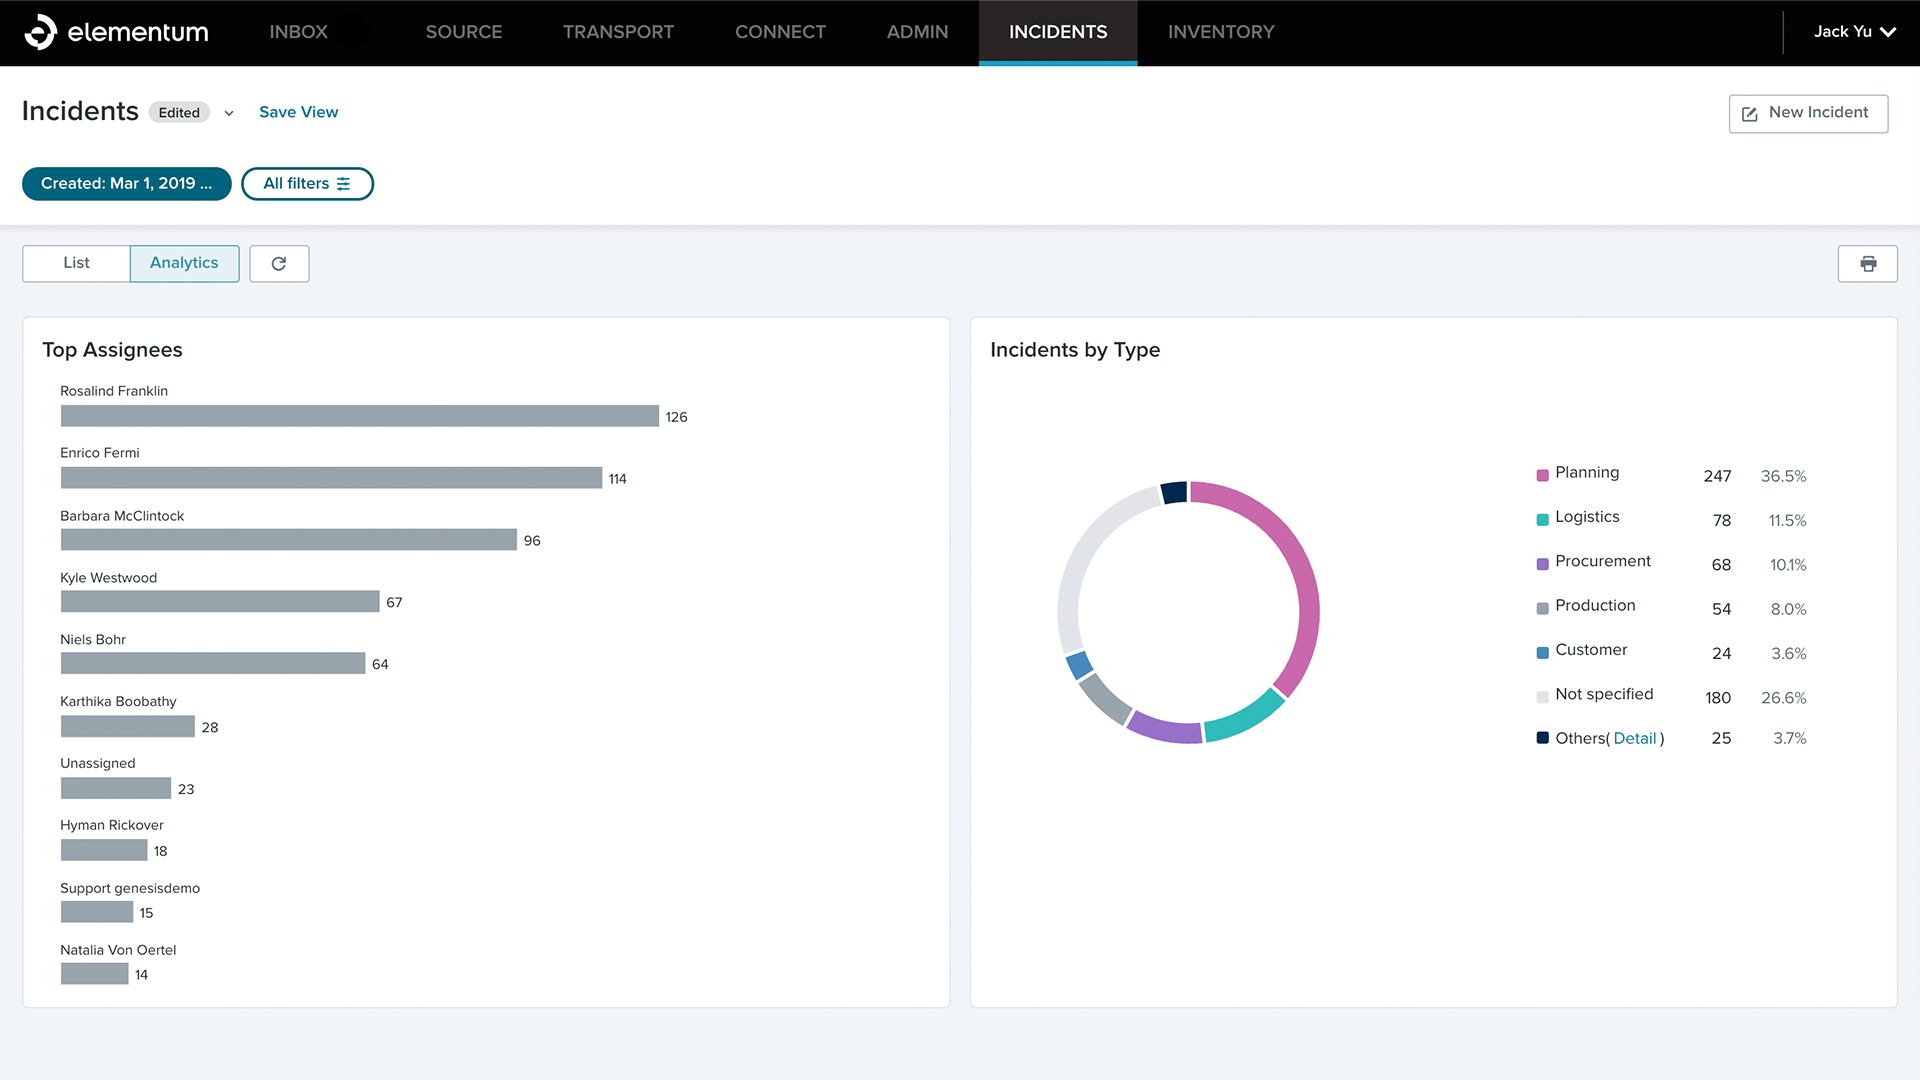 Review incident management performance at a glance and maximize team efficiency